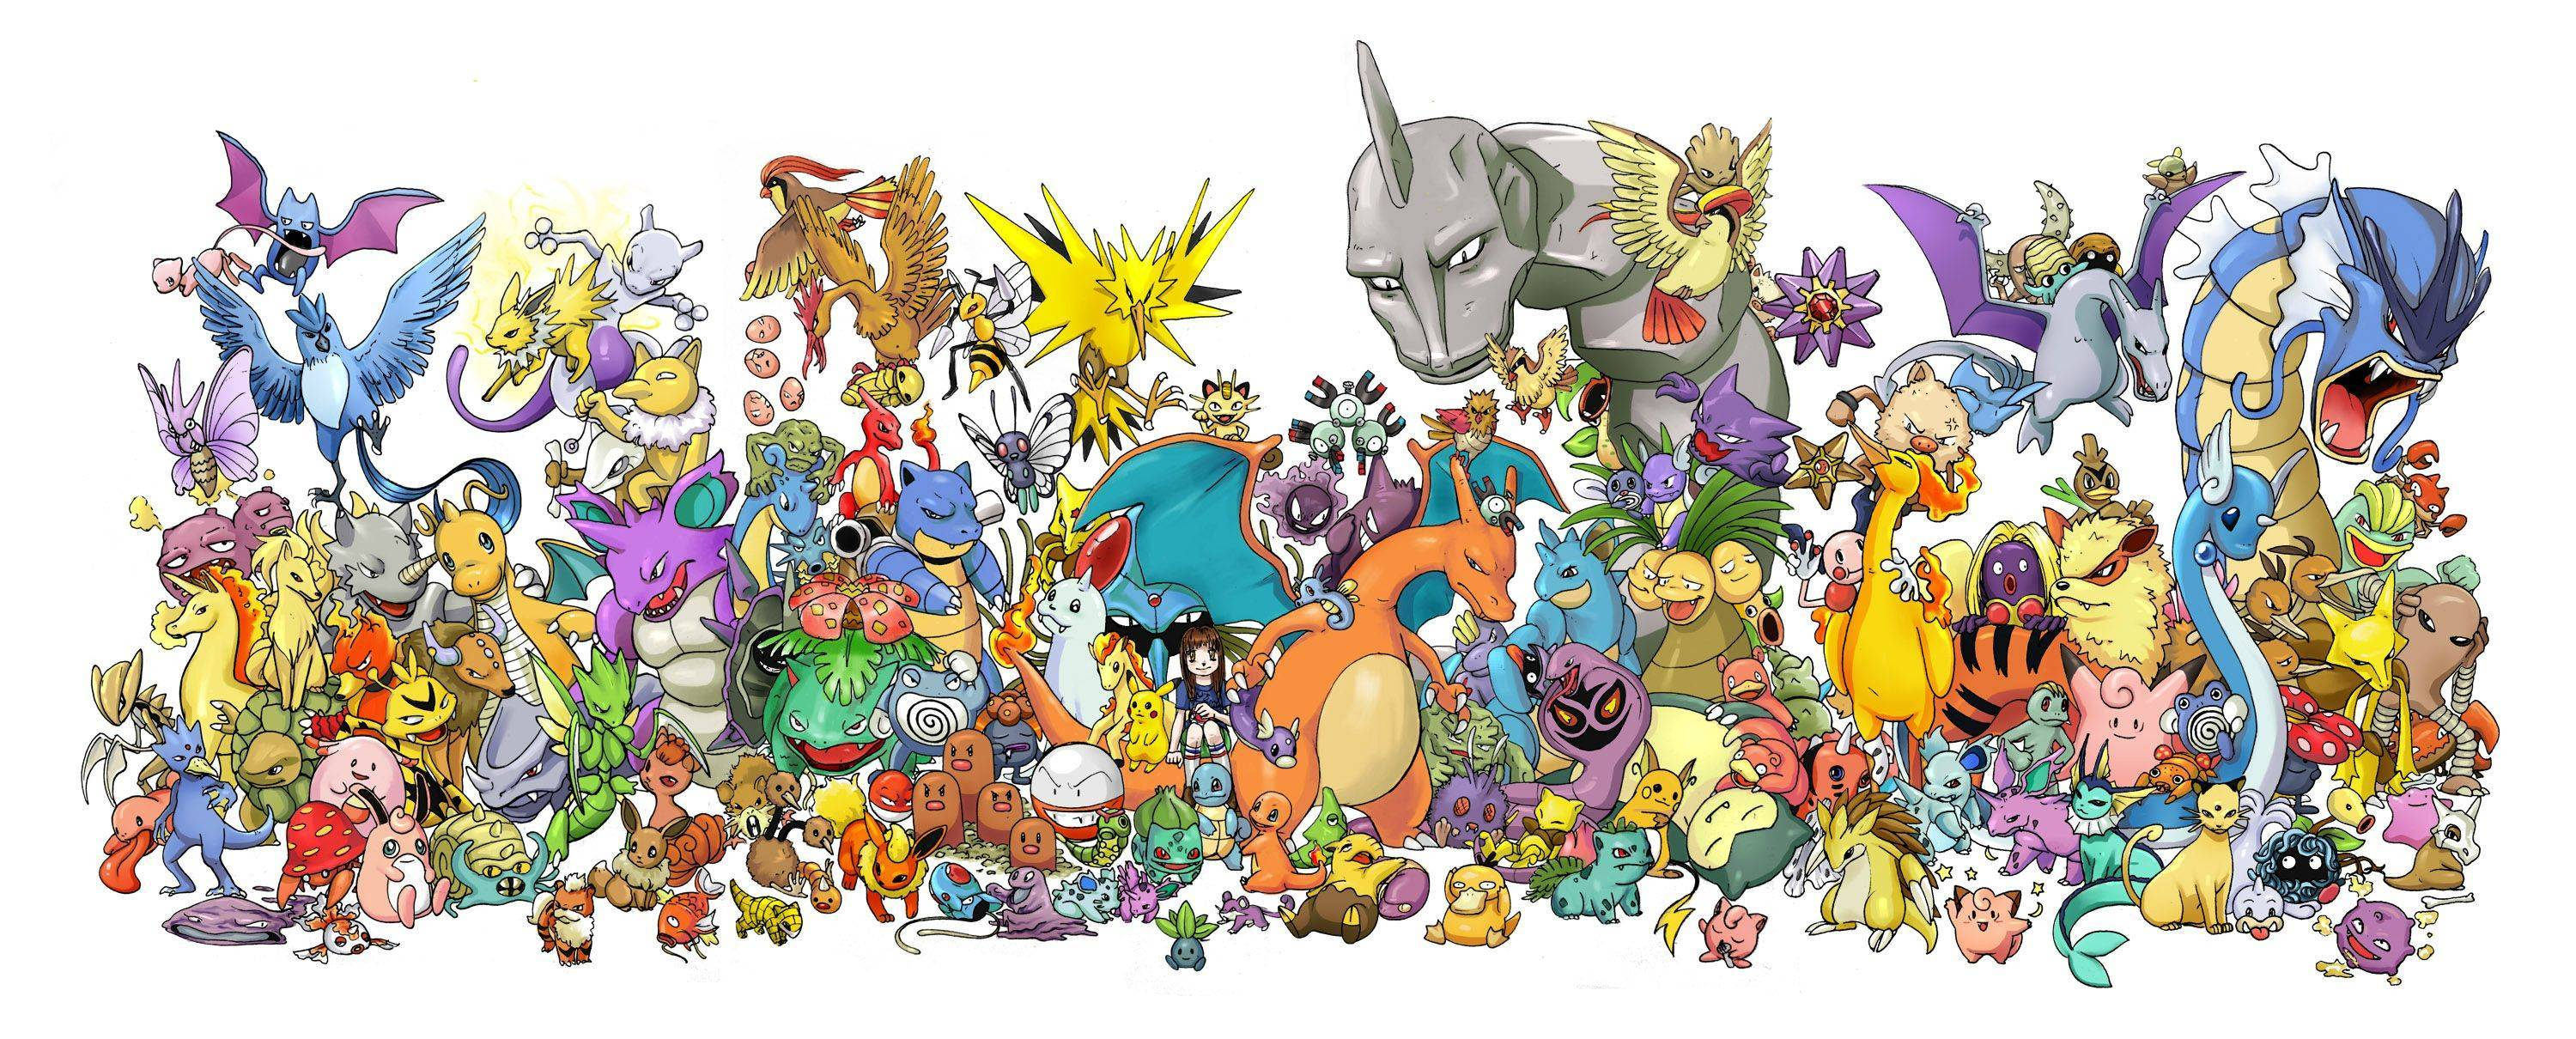 Original Pokemon Wallpapers - Wallpaper Cave